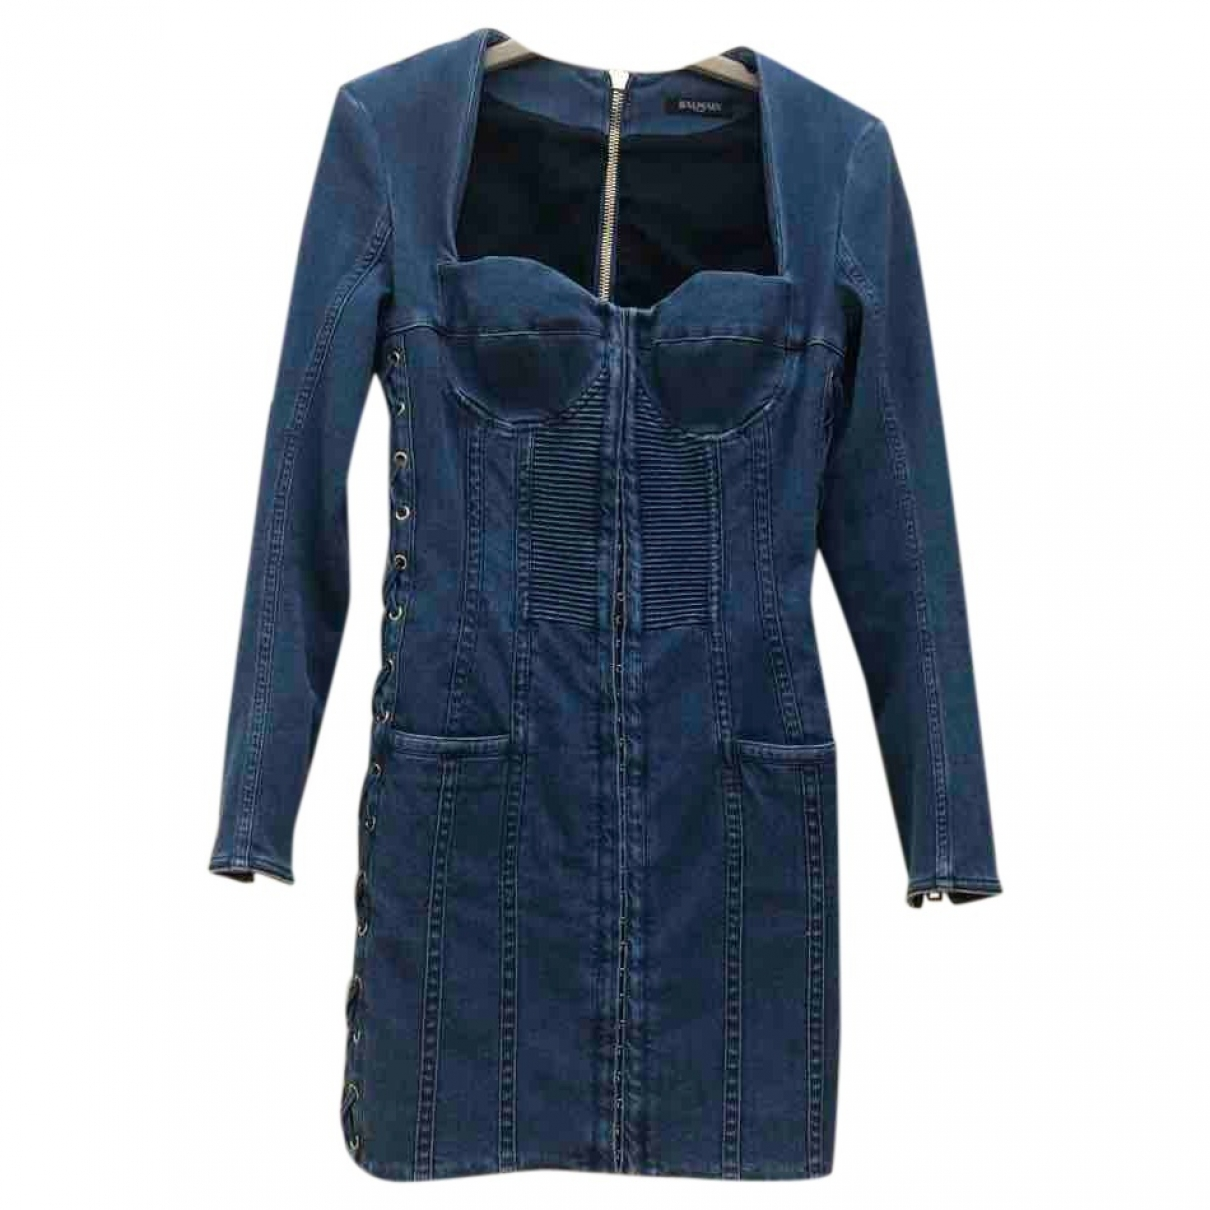 Balmain \N Blue Cotton dress for Women 36 FR